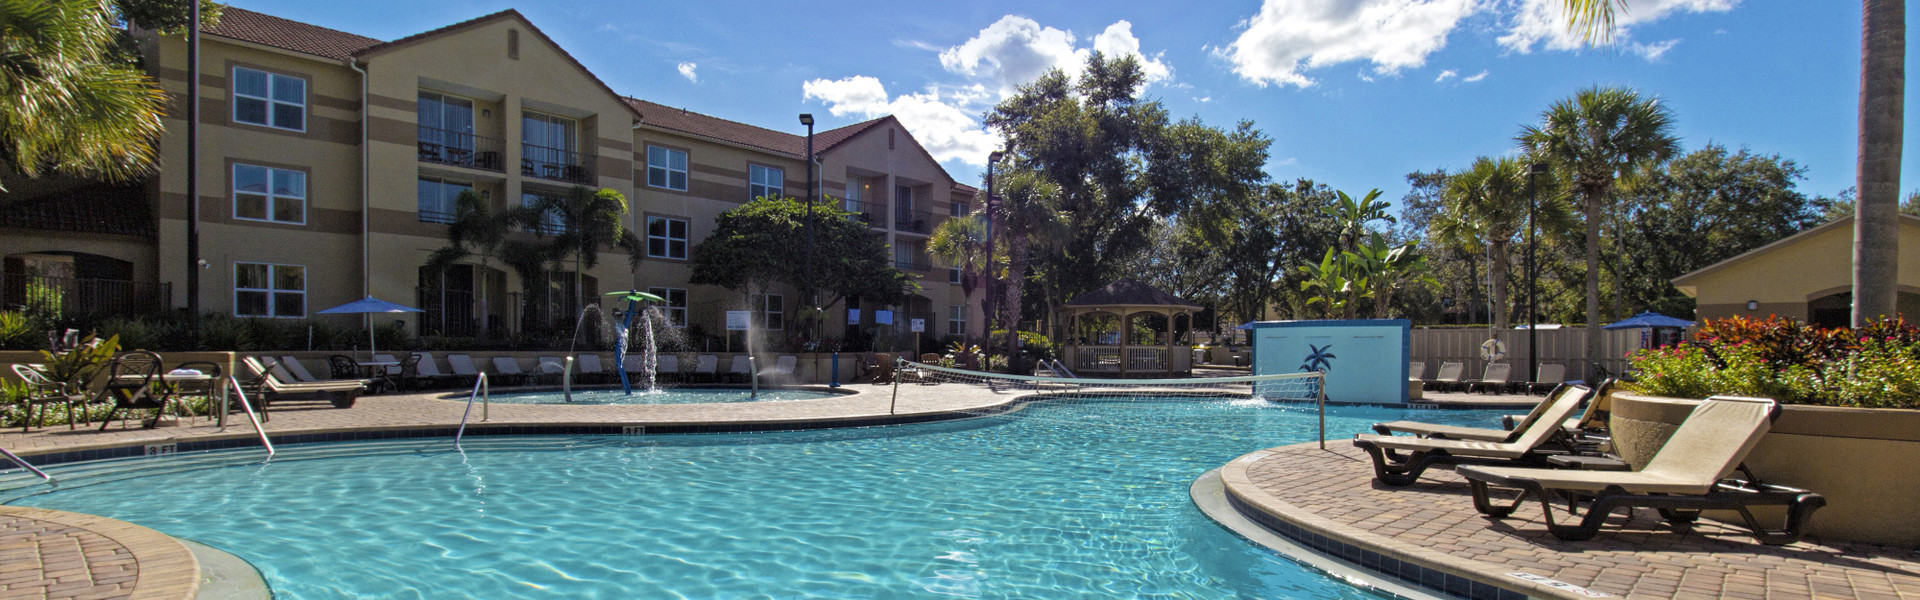 One Bedroom Suites & Villas Near Lake Buena Vista Florida | Resorts Close to Sea World in Lake Buena Vista, FL 32836 | Westgate Blue Tree Resort